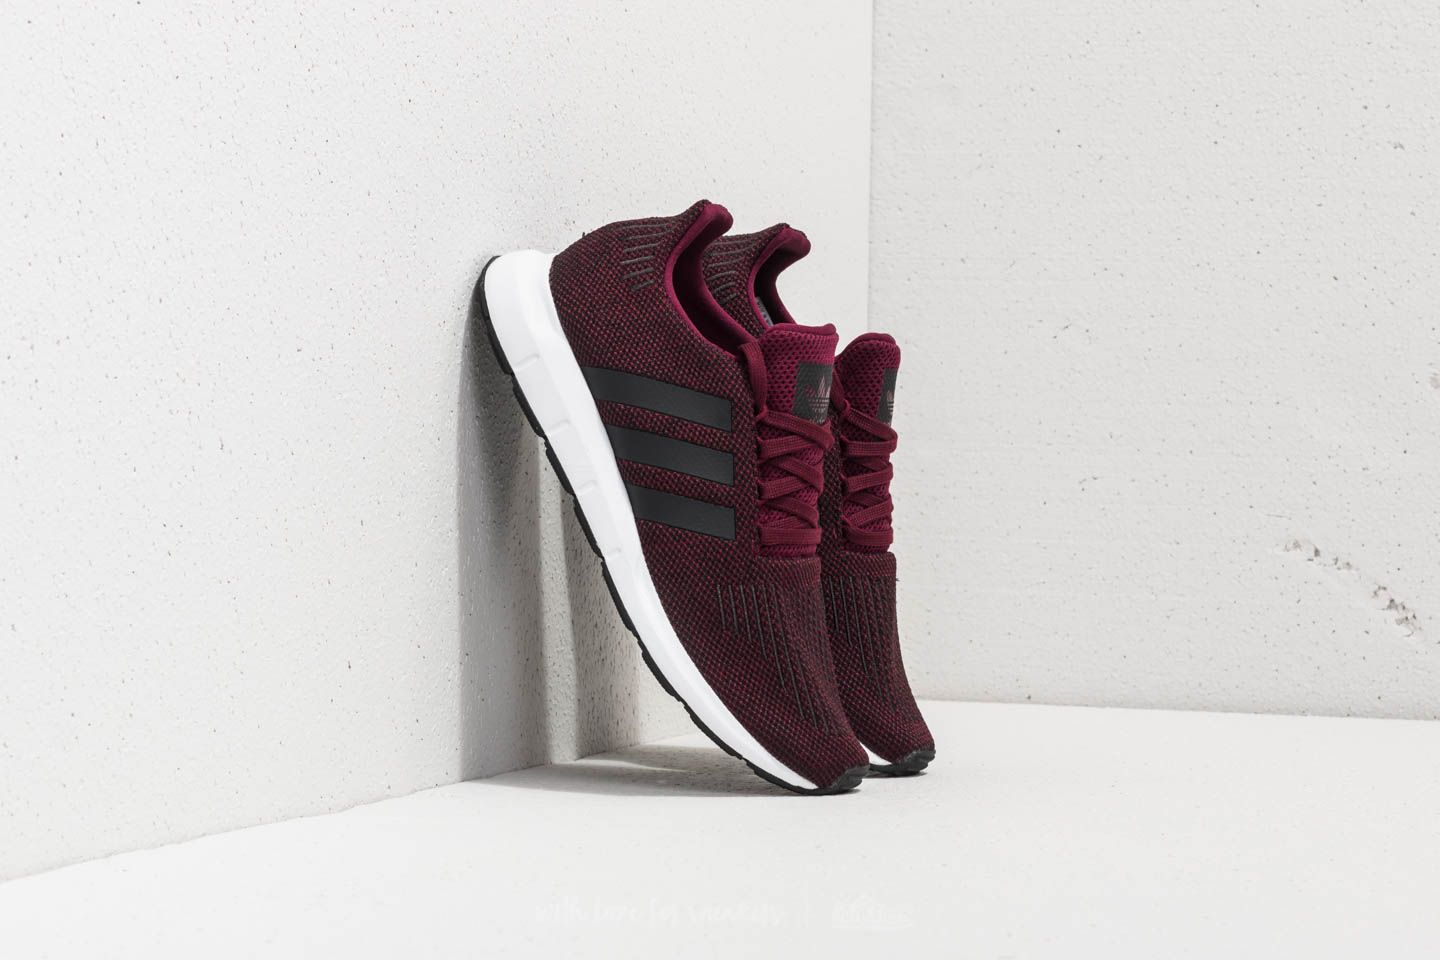 257d0dc4aadf1 adidas Swift Run Maroon  Core Black  Ftw White